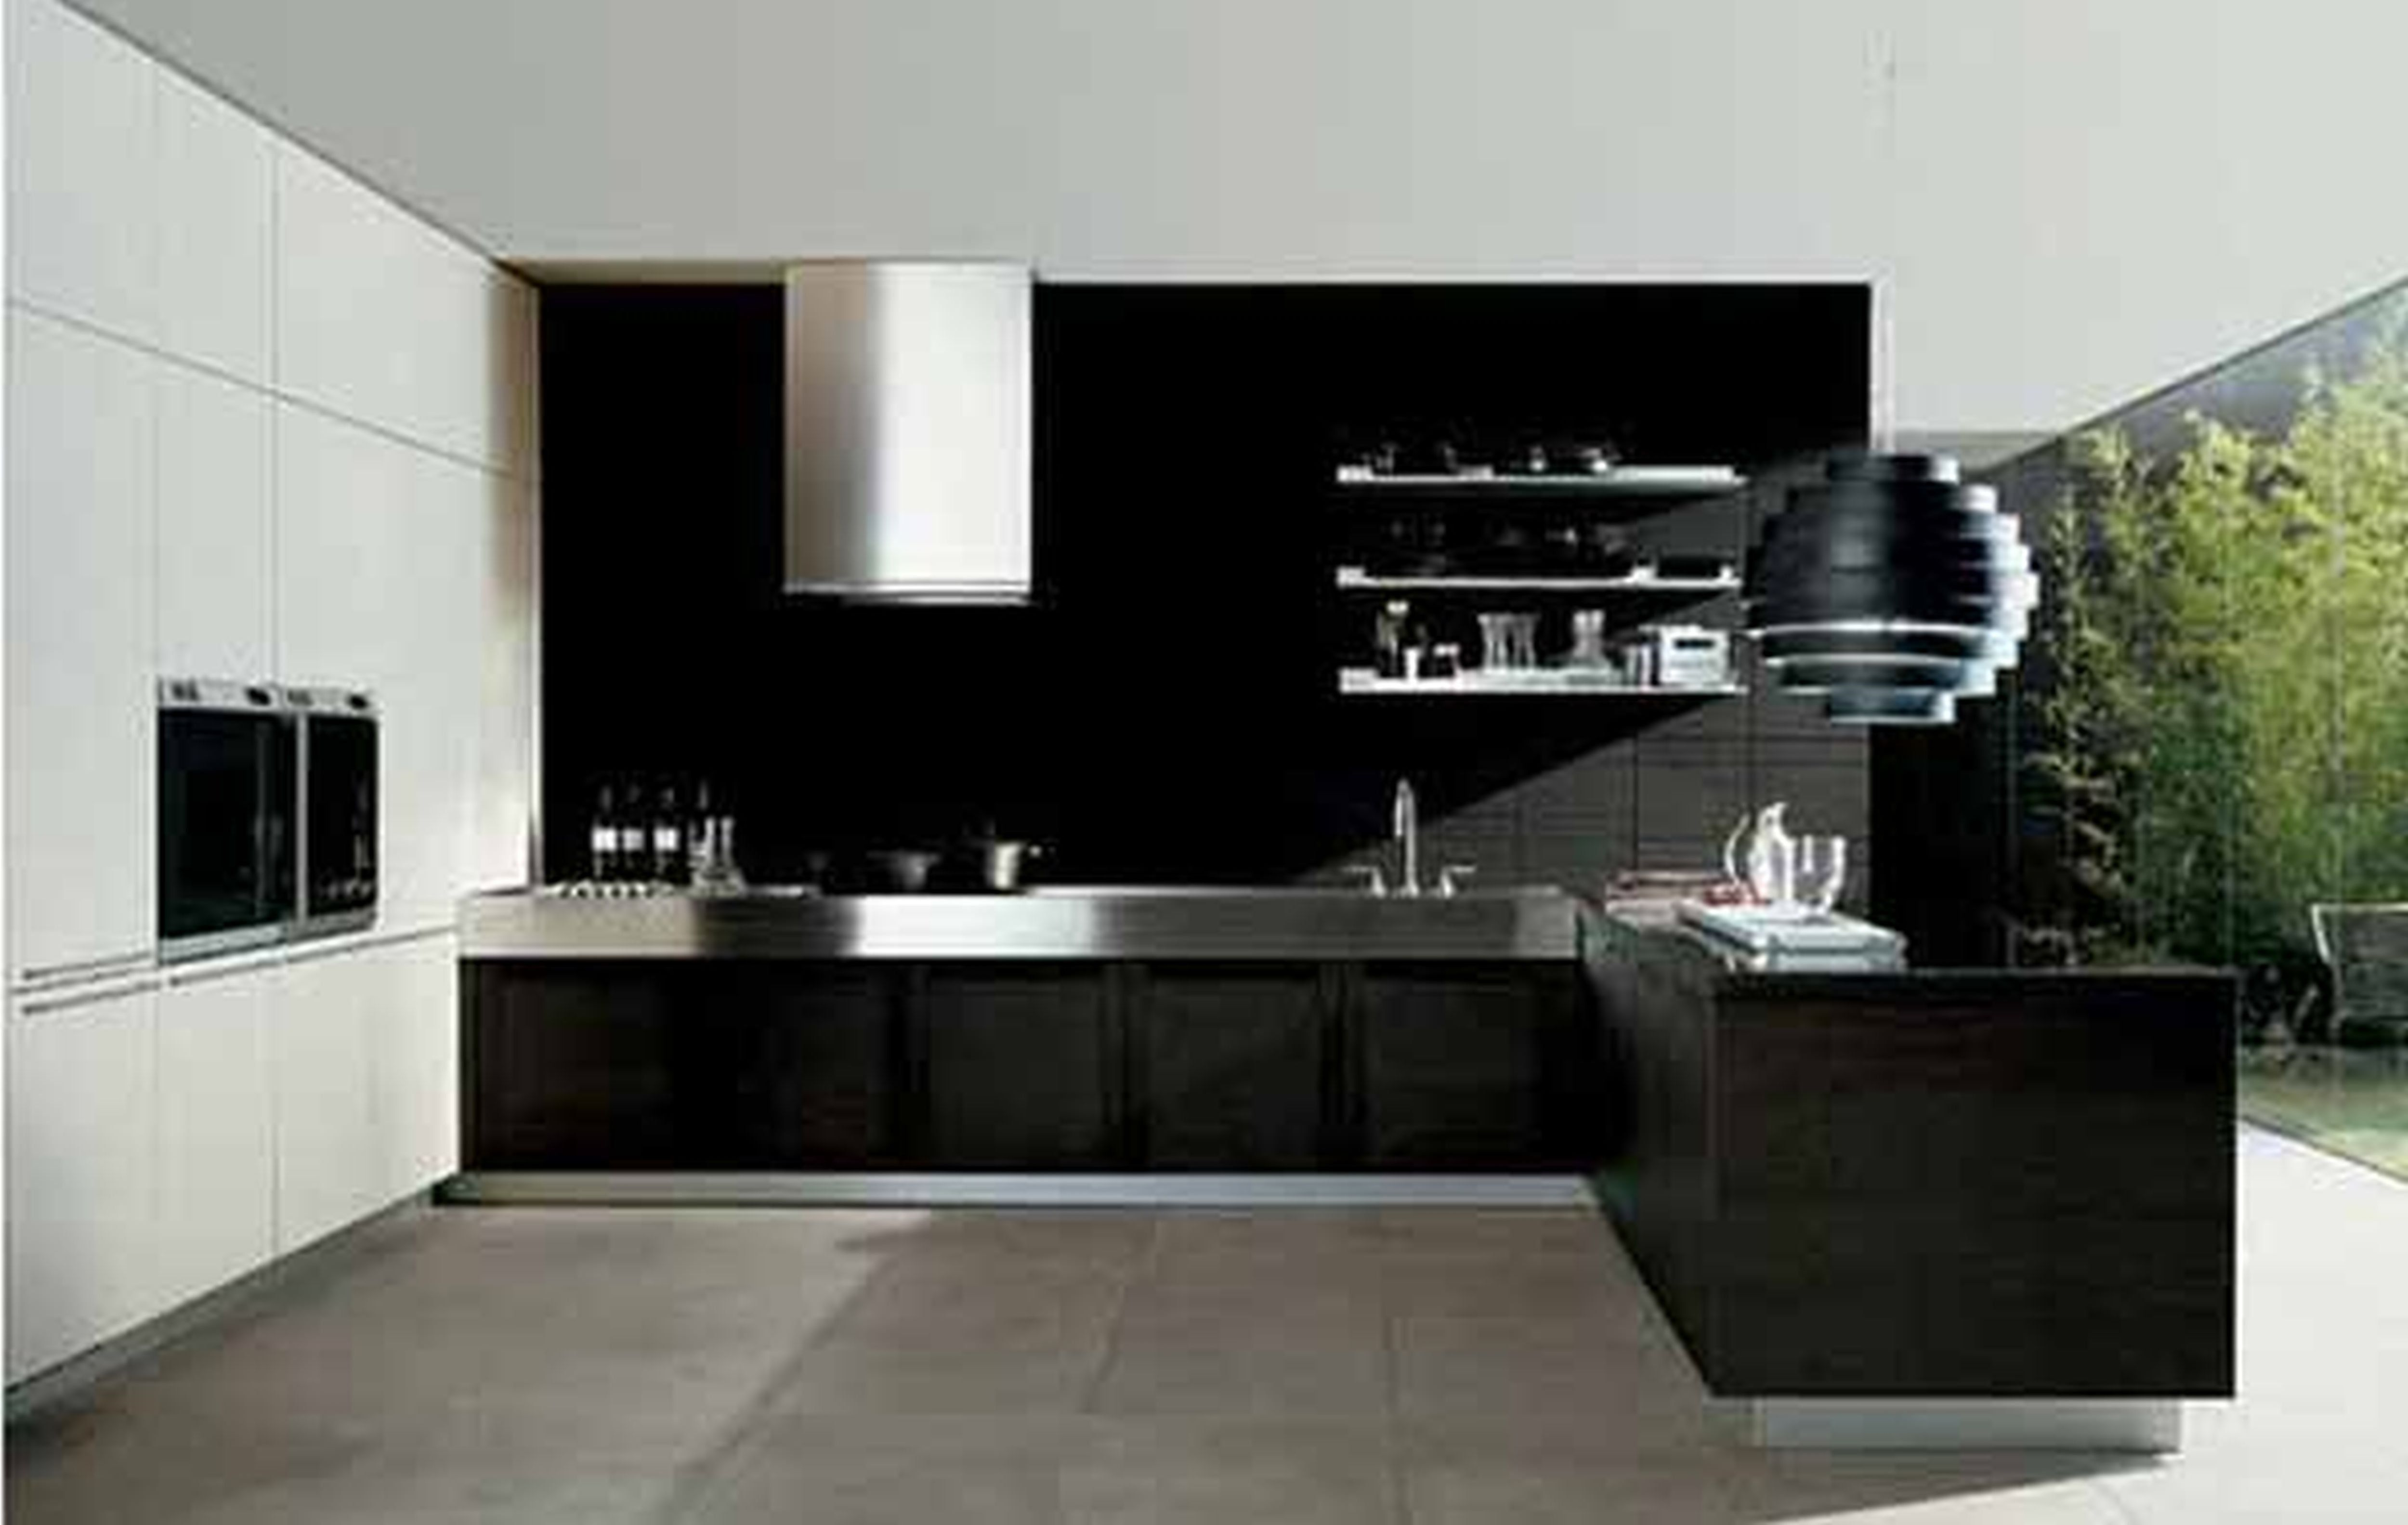 Miami Kitchen Cabinets For White Country Kitchen Ideas Chinese Dream Home Modern